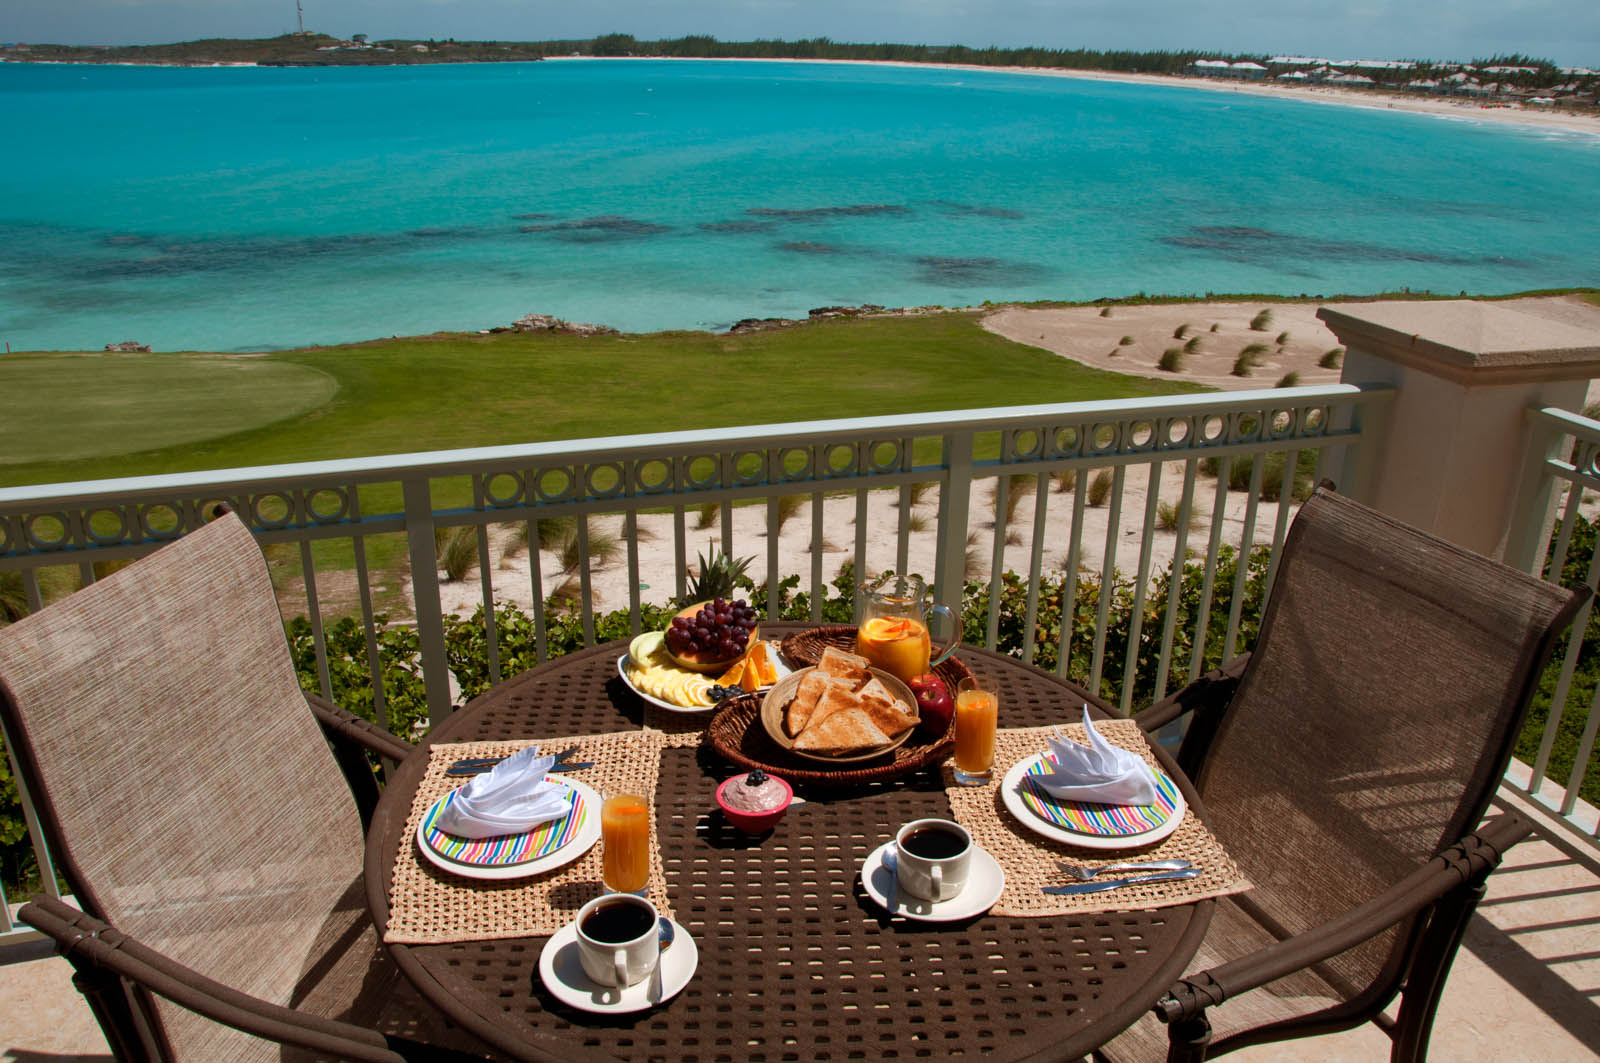 Breakfast_Setup_Balcony9.jpg